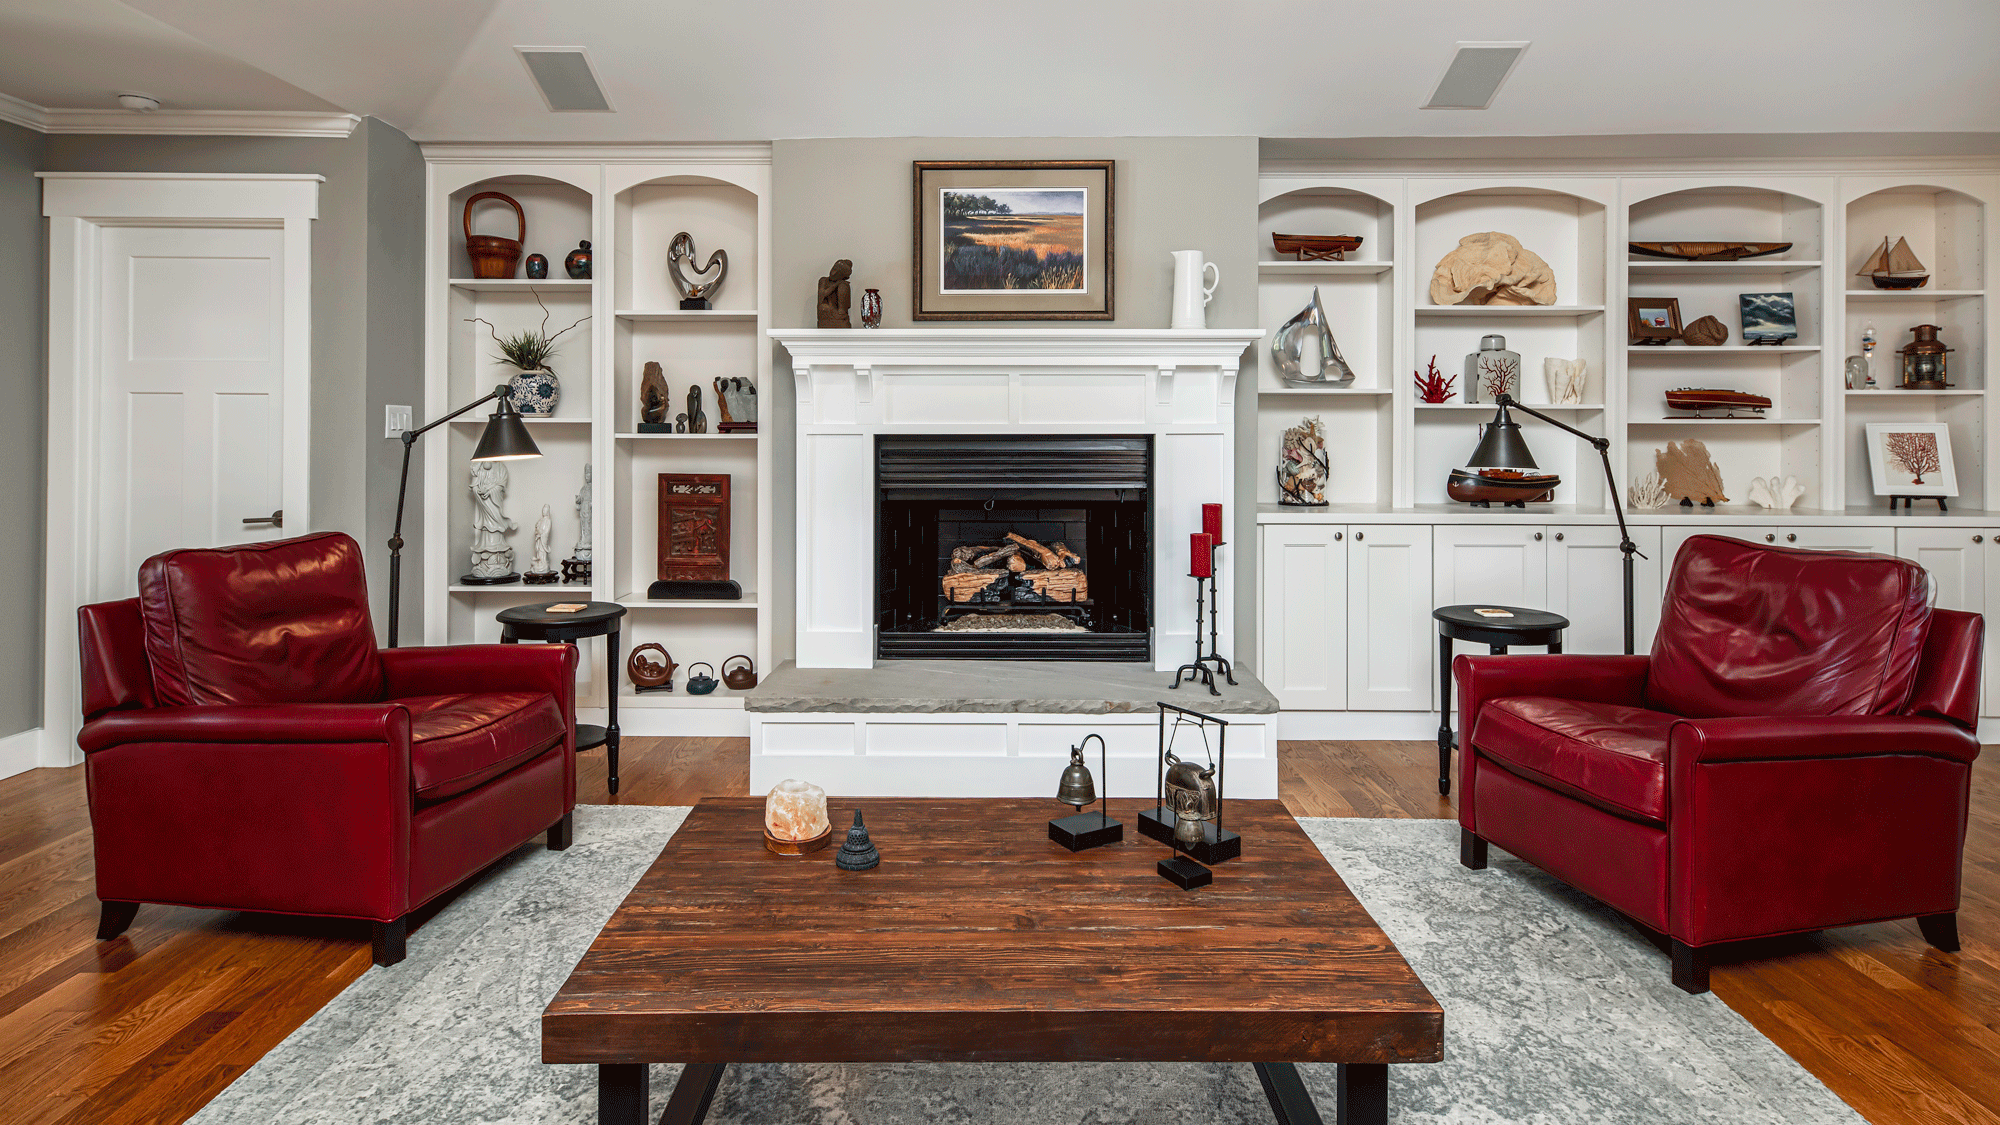 living room design with built in shelves, seating, decor